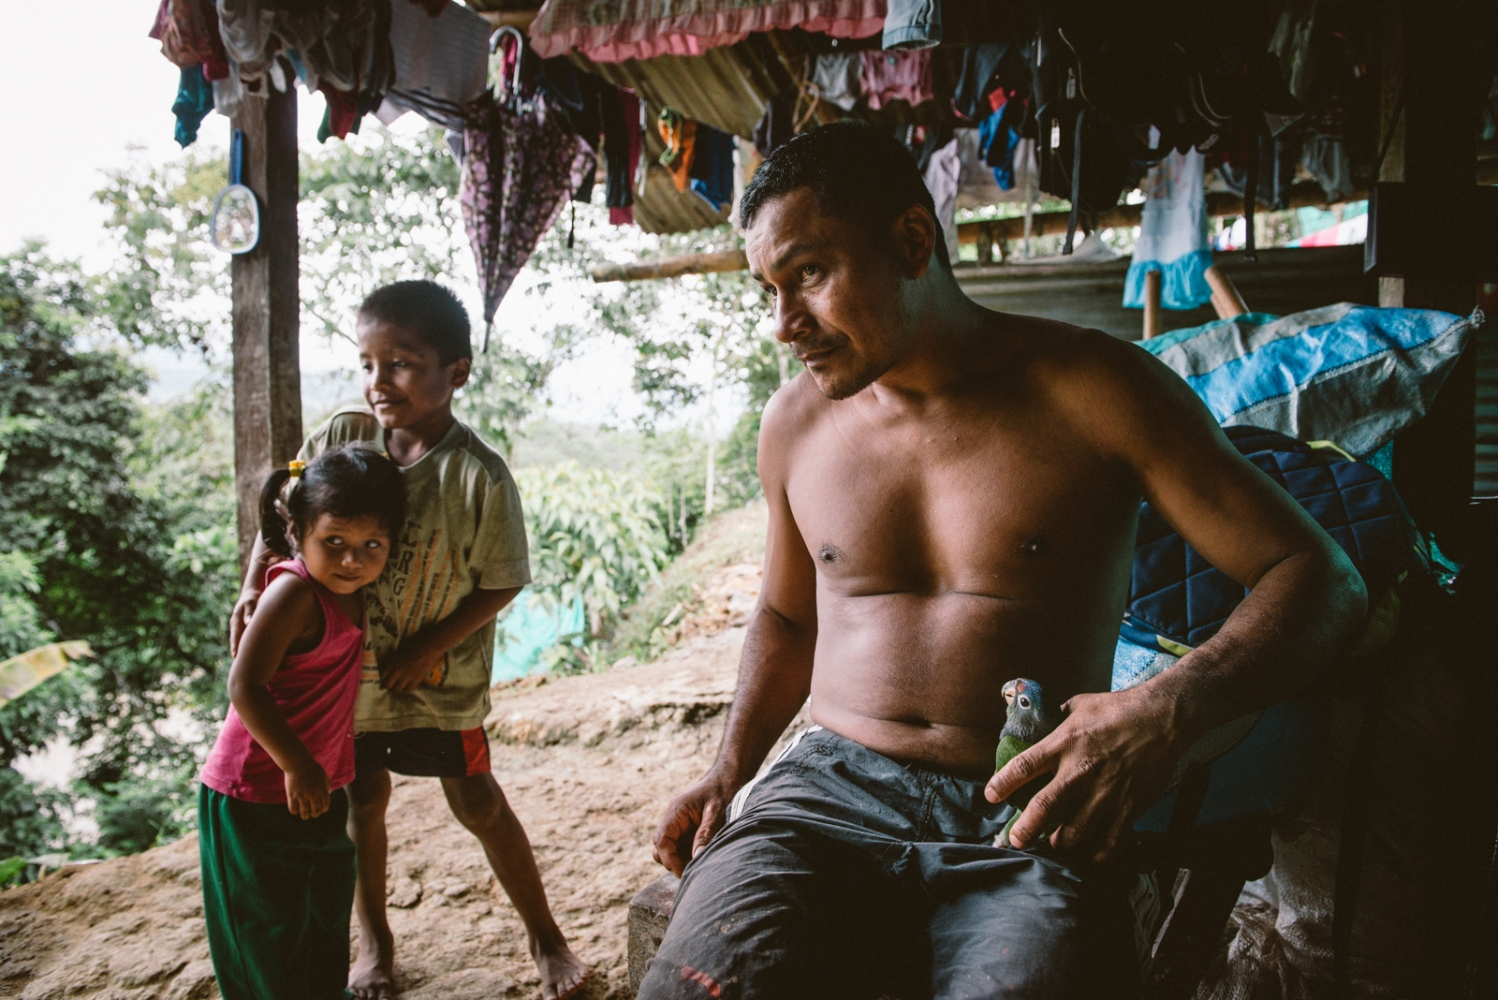 Traditional healer and medicine man, 'Taita' Carlos Chindoy and his children in their make shift home on a cliff in Mocoa, Putumayo, Colombia. Taita Carlos is a well known 'curandero' who heals his patients with the Yagé (ayahuasca) plant of the Amazons which he also prepares in a ceremonial way for his fellow community of indigenous Sciona healers.⠀